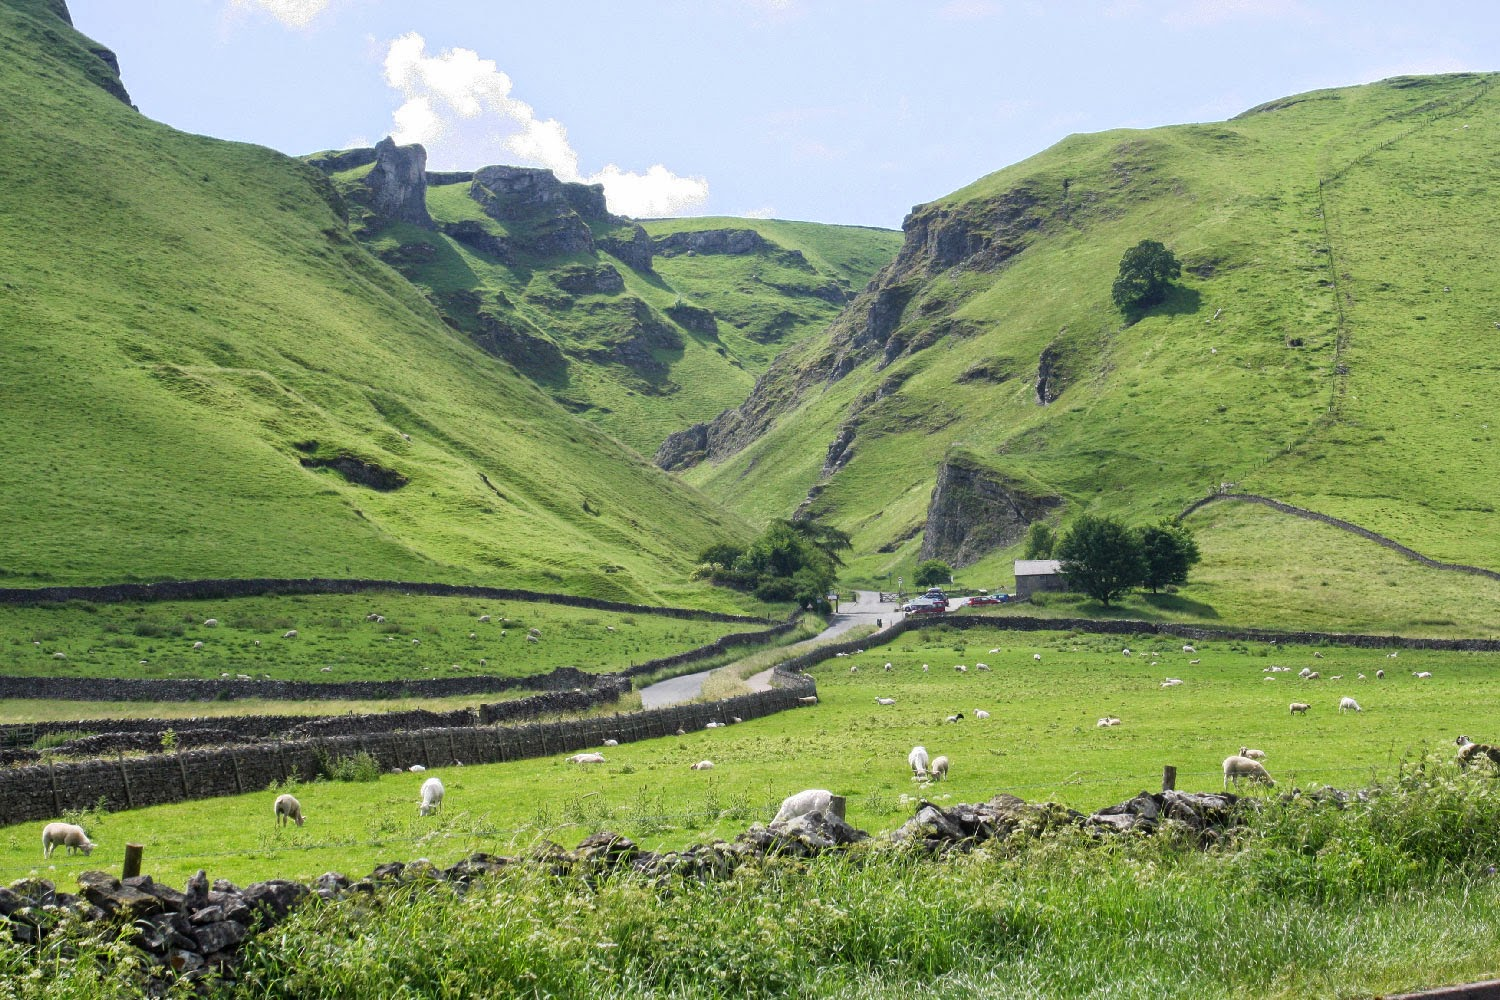 A shamelessly stolen picture of Winnats Pass (from Wikipedia)